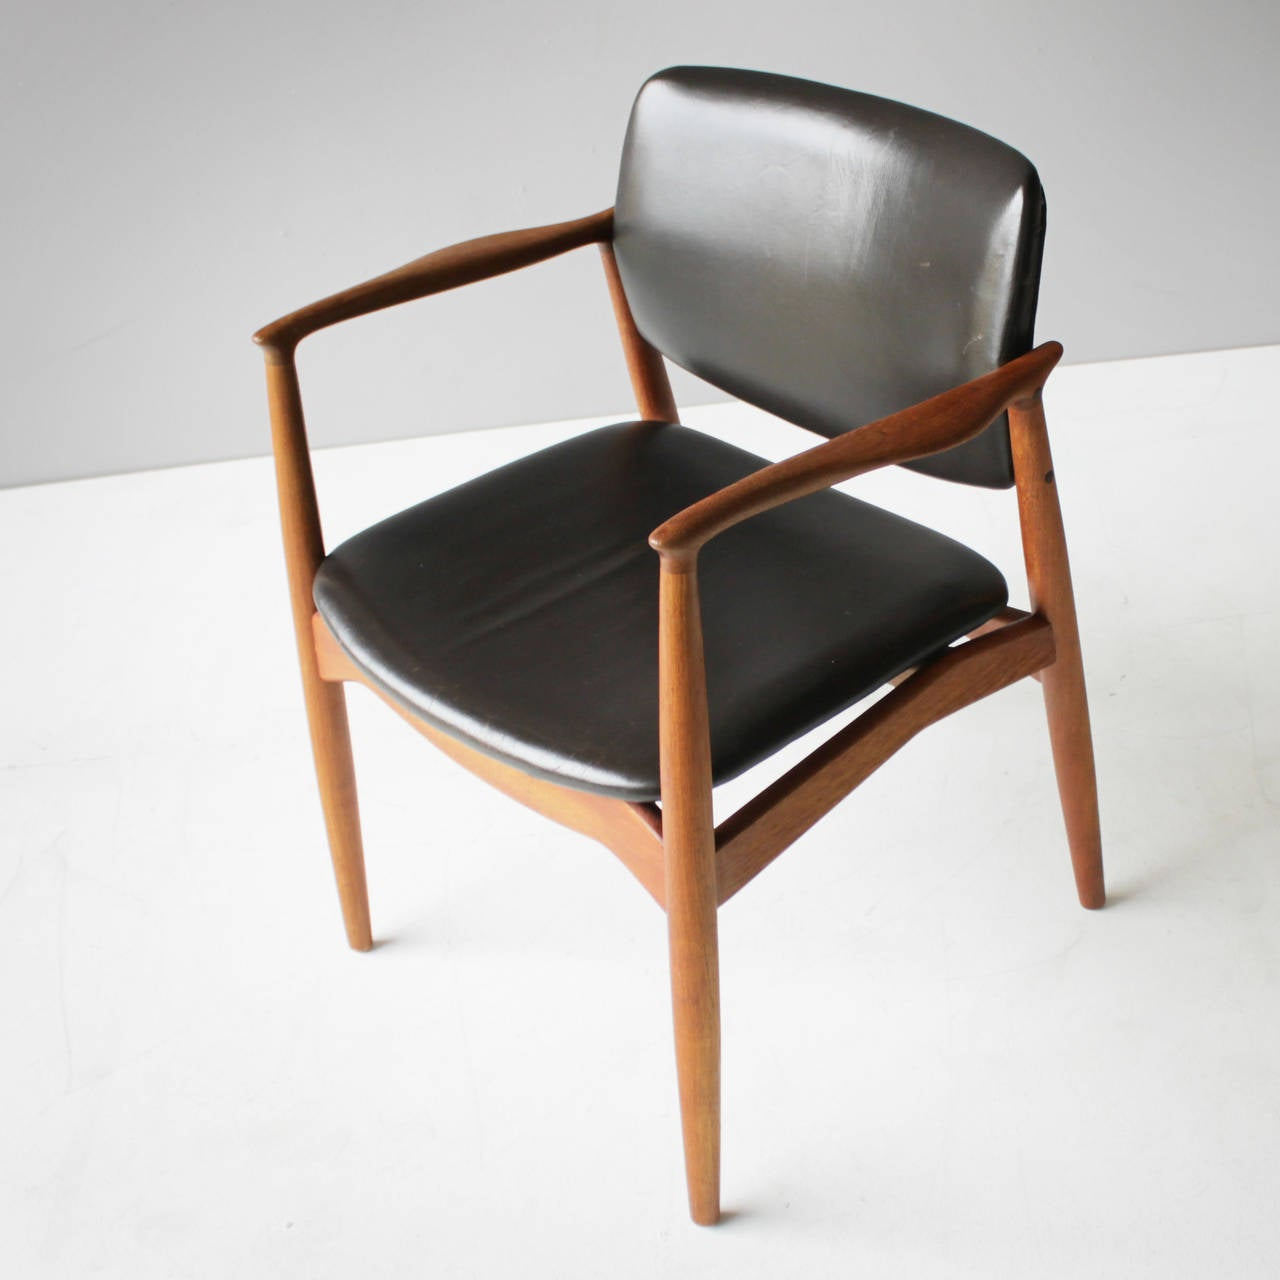 Mid-20th Century Teak and Leather Chair by Eric Buck for Ø. Mobler, Denmark For Sale